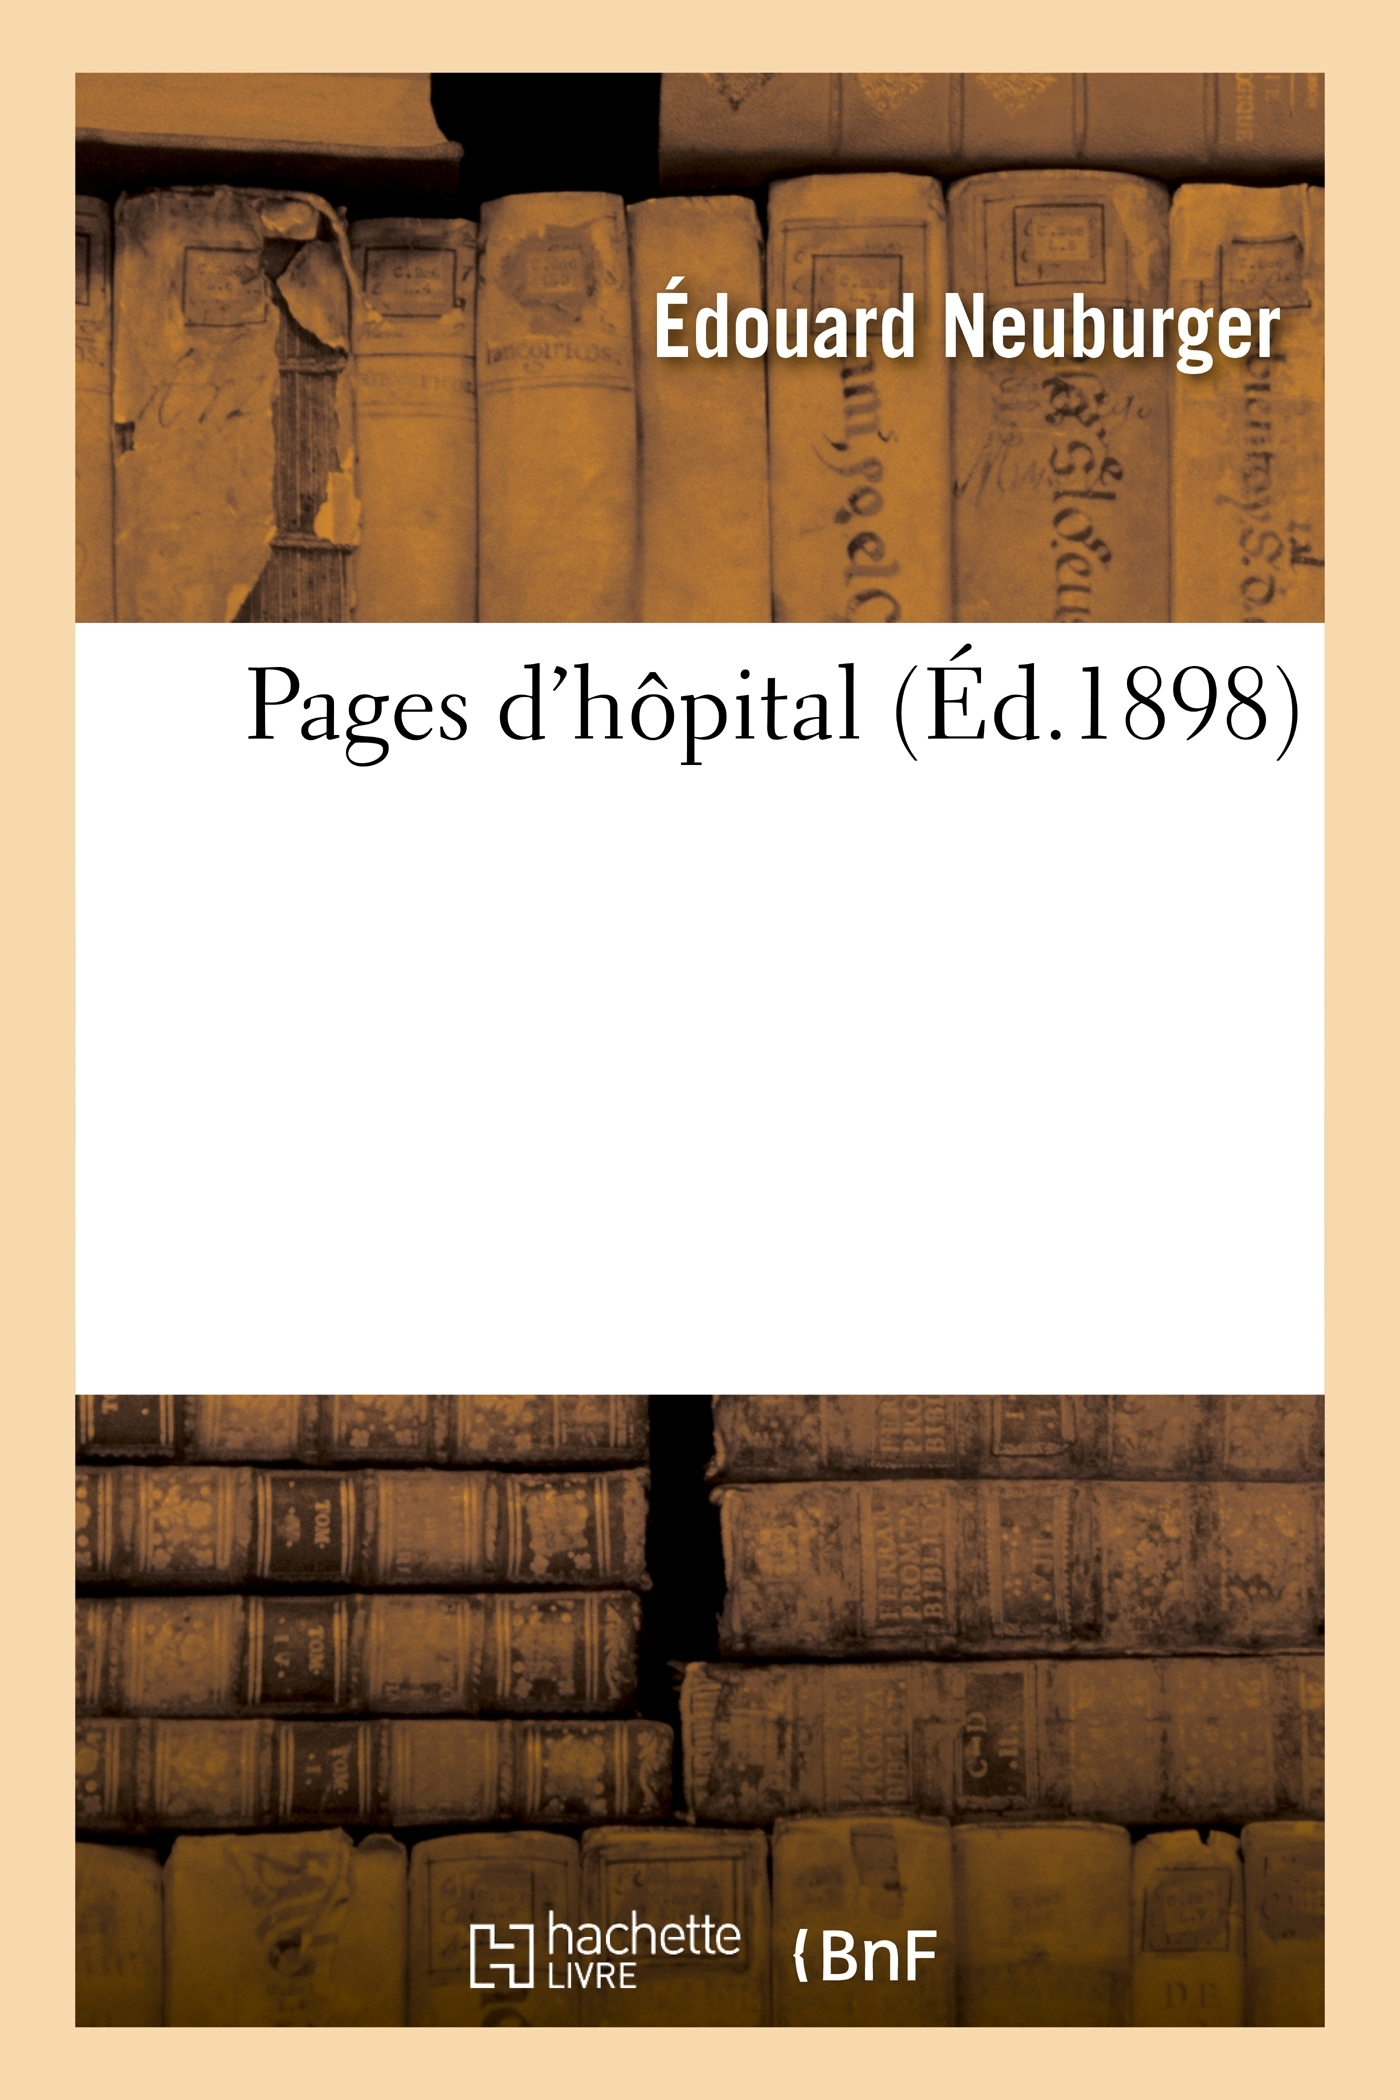 PAGES D'HOPITAL